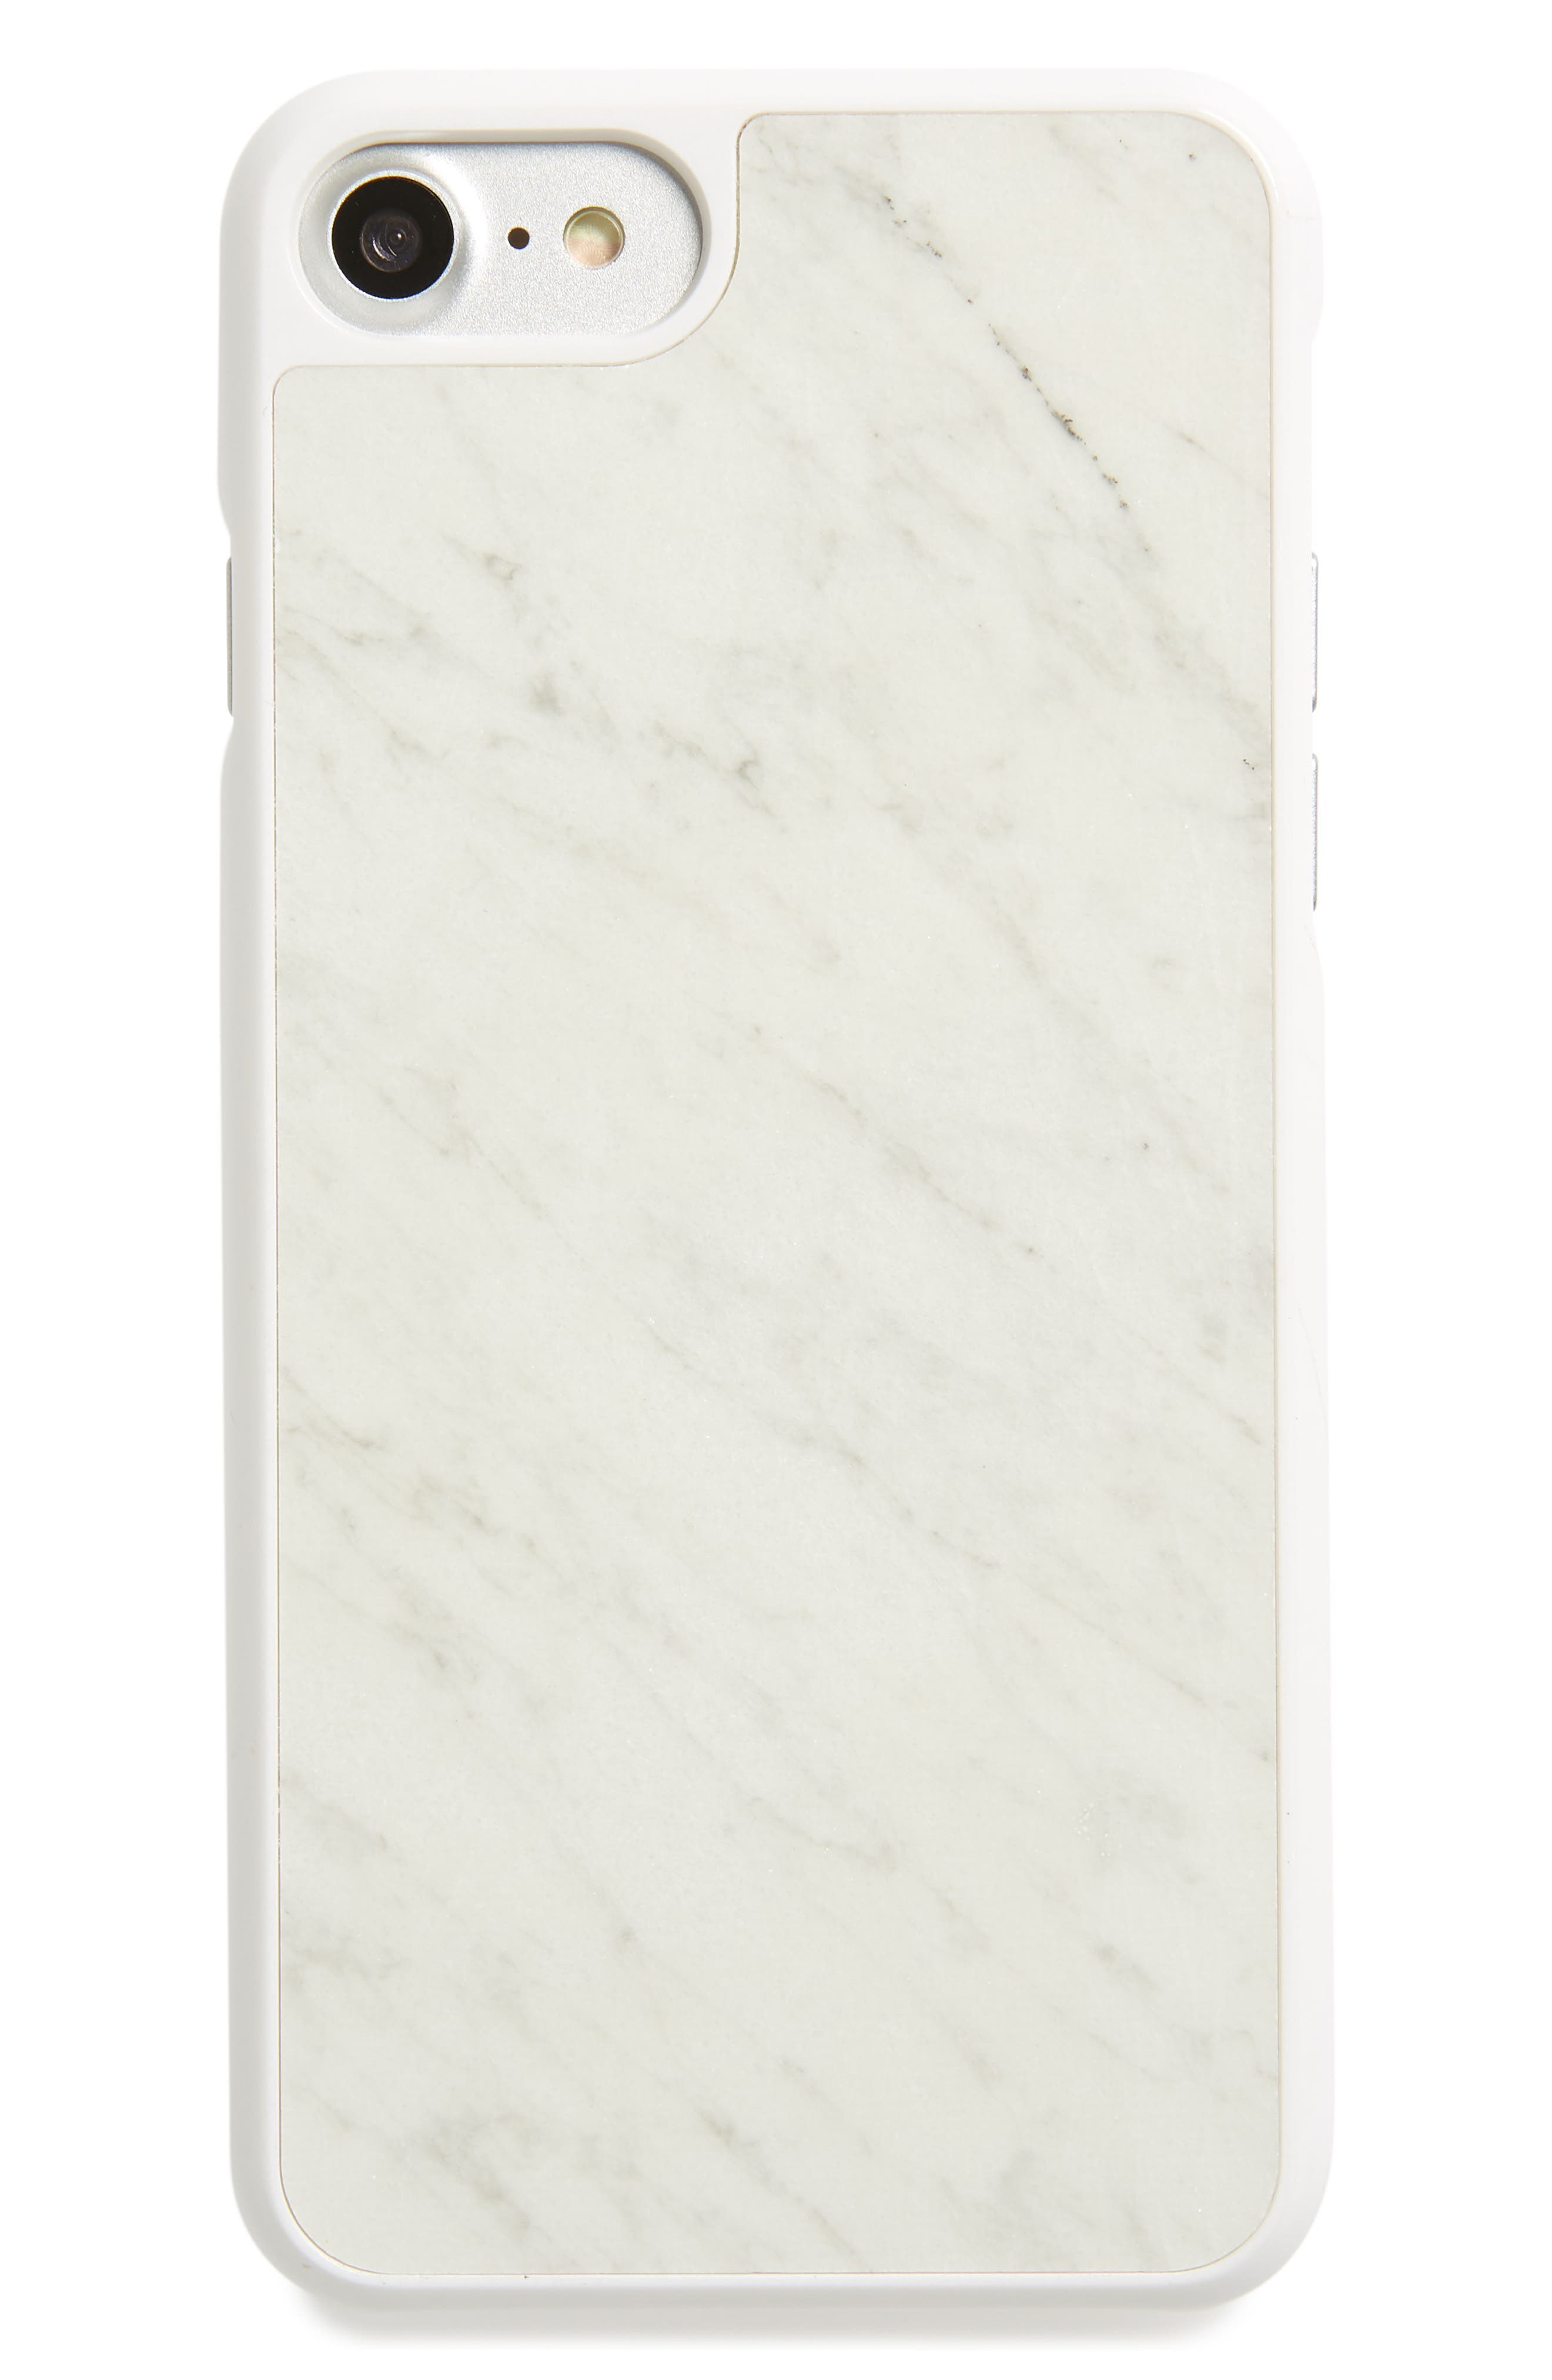 Genuine White Marble iPhone 6/6s/7/8 & 6/6s/7/8 Plus Case,                             Main thumbnail 1, color,                             WHITE